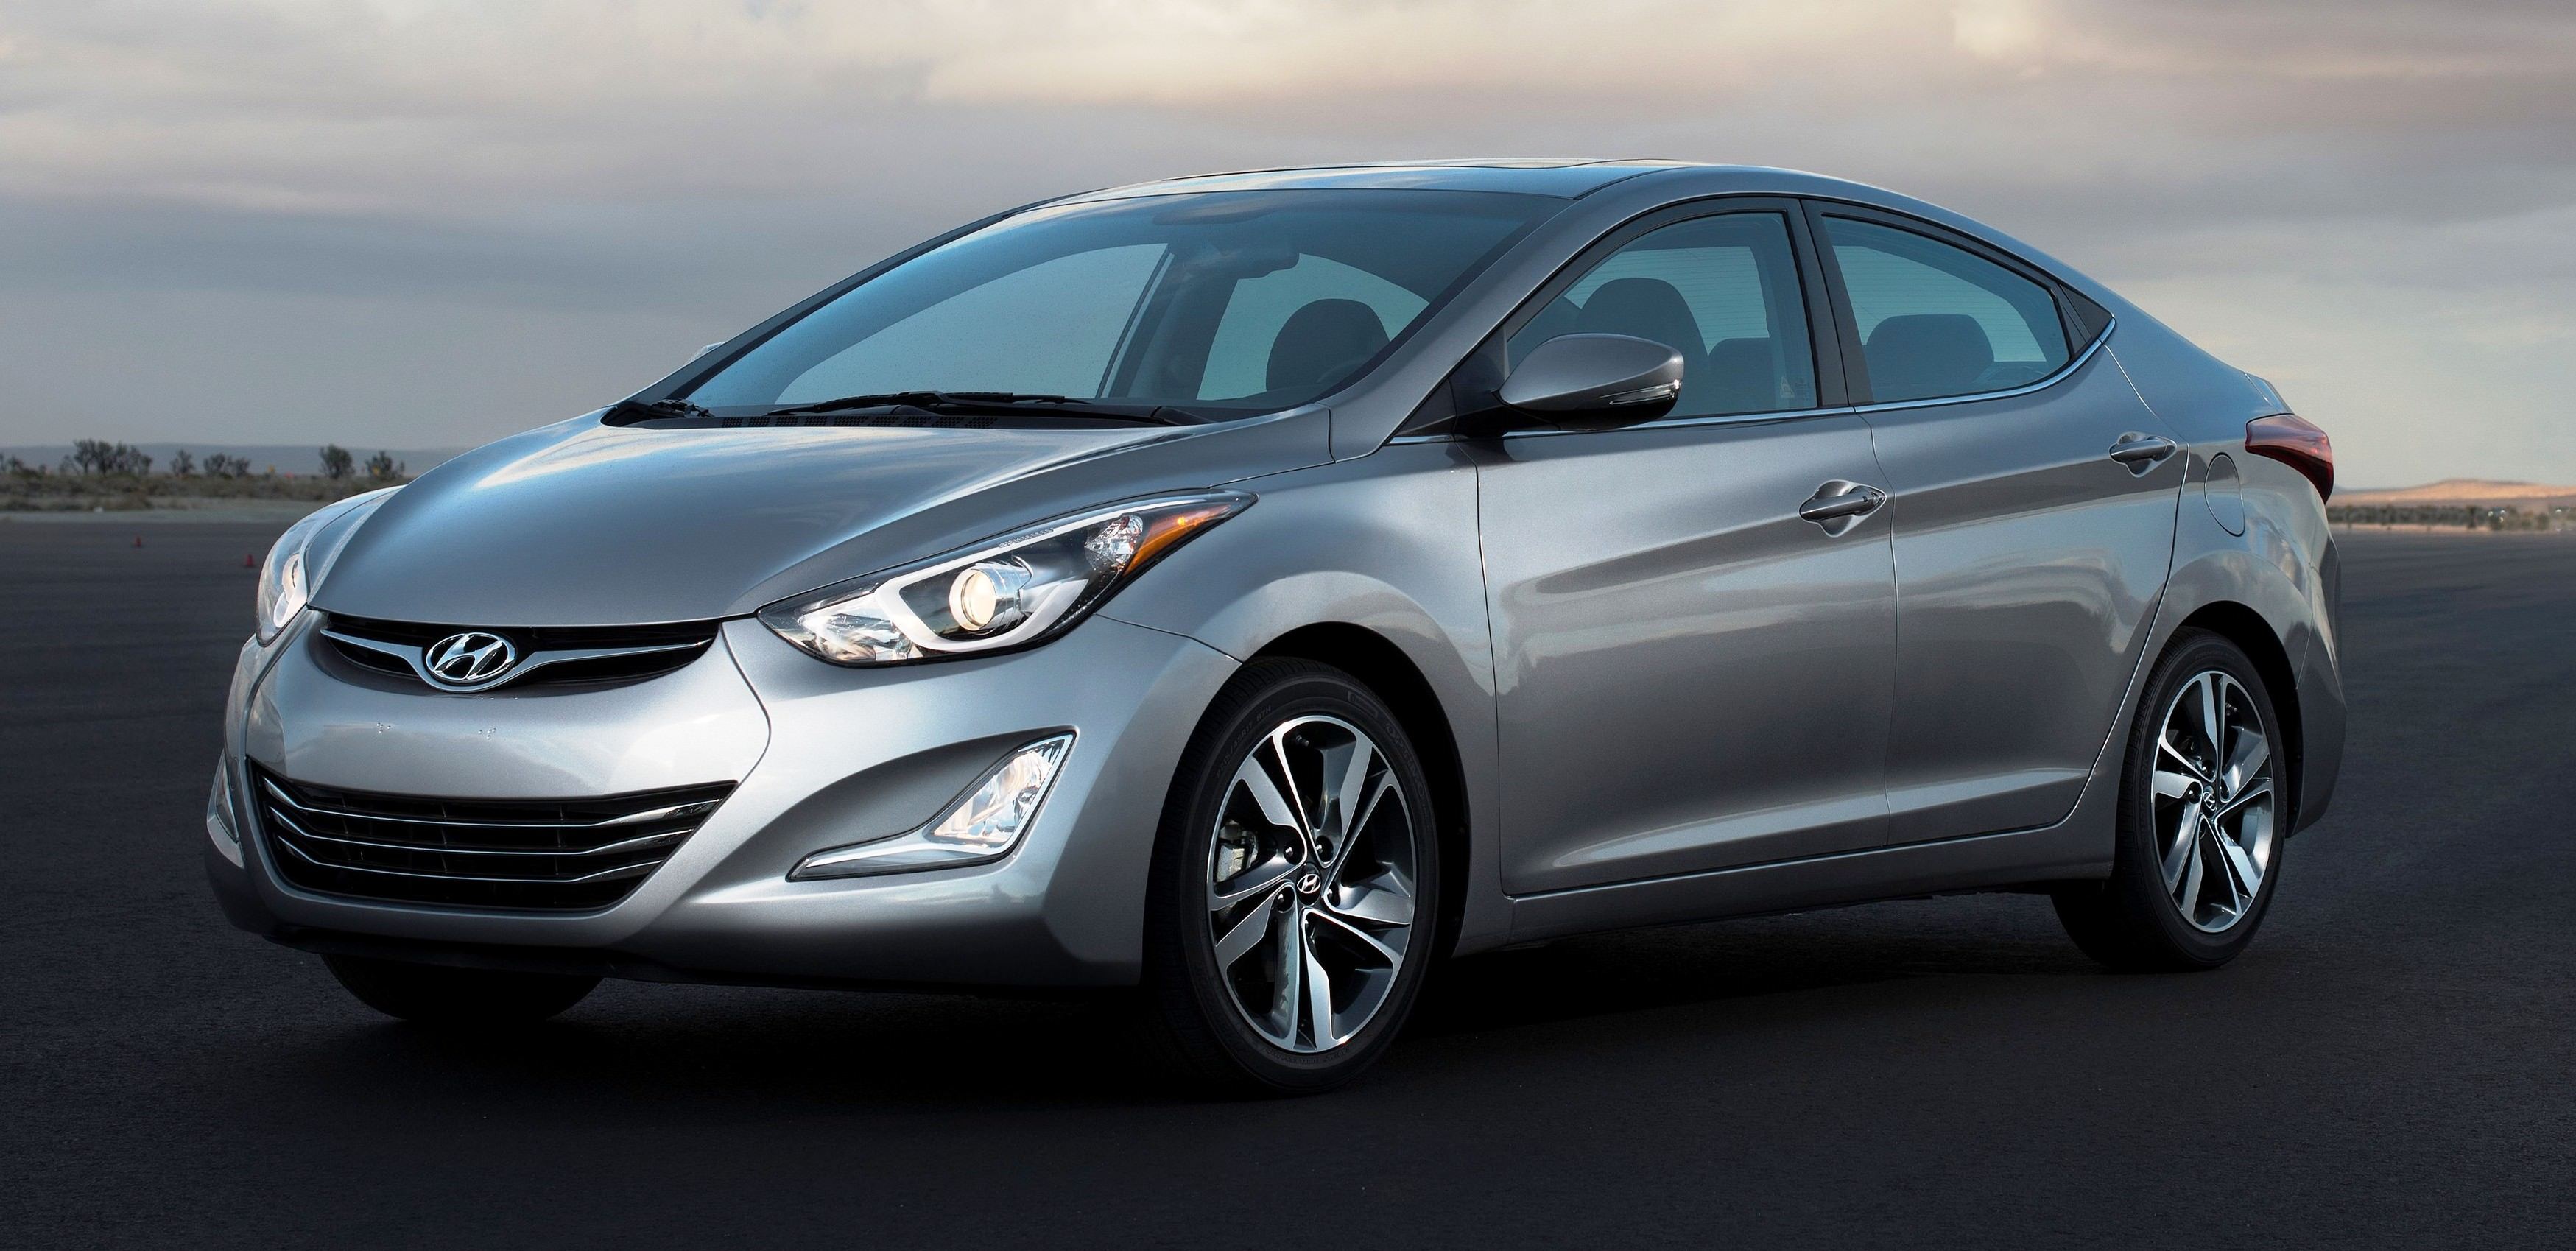 2015 hyundai elantra sedan brings classy led and tech updates features photos and pricing. Black Bedroom Furniture Sets. Home Design Ideas